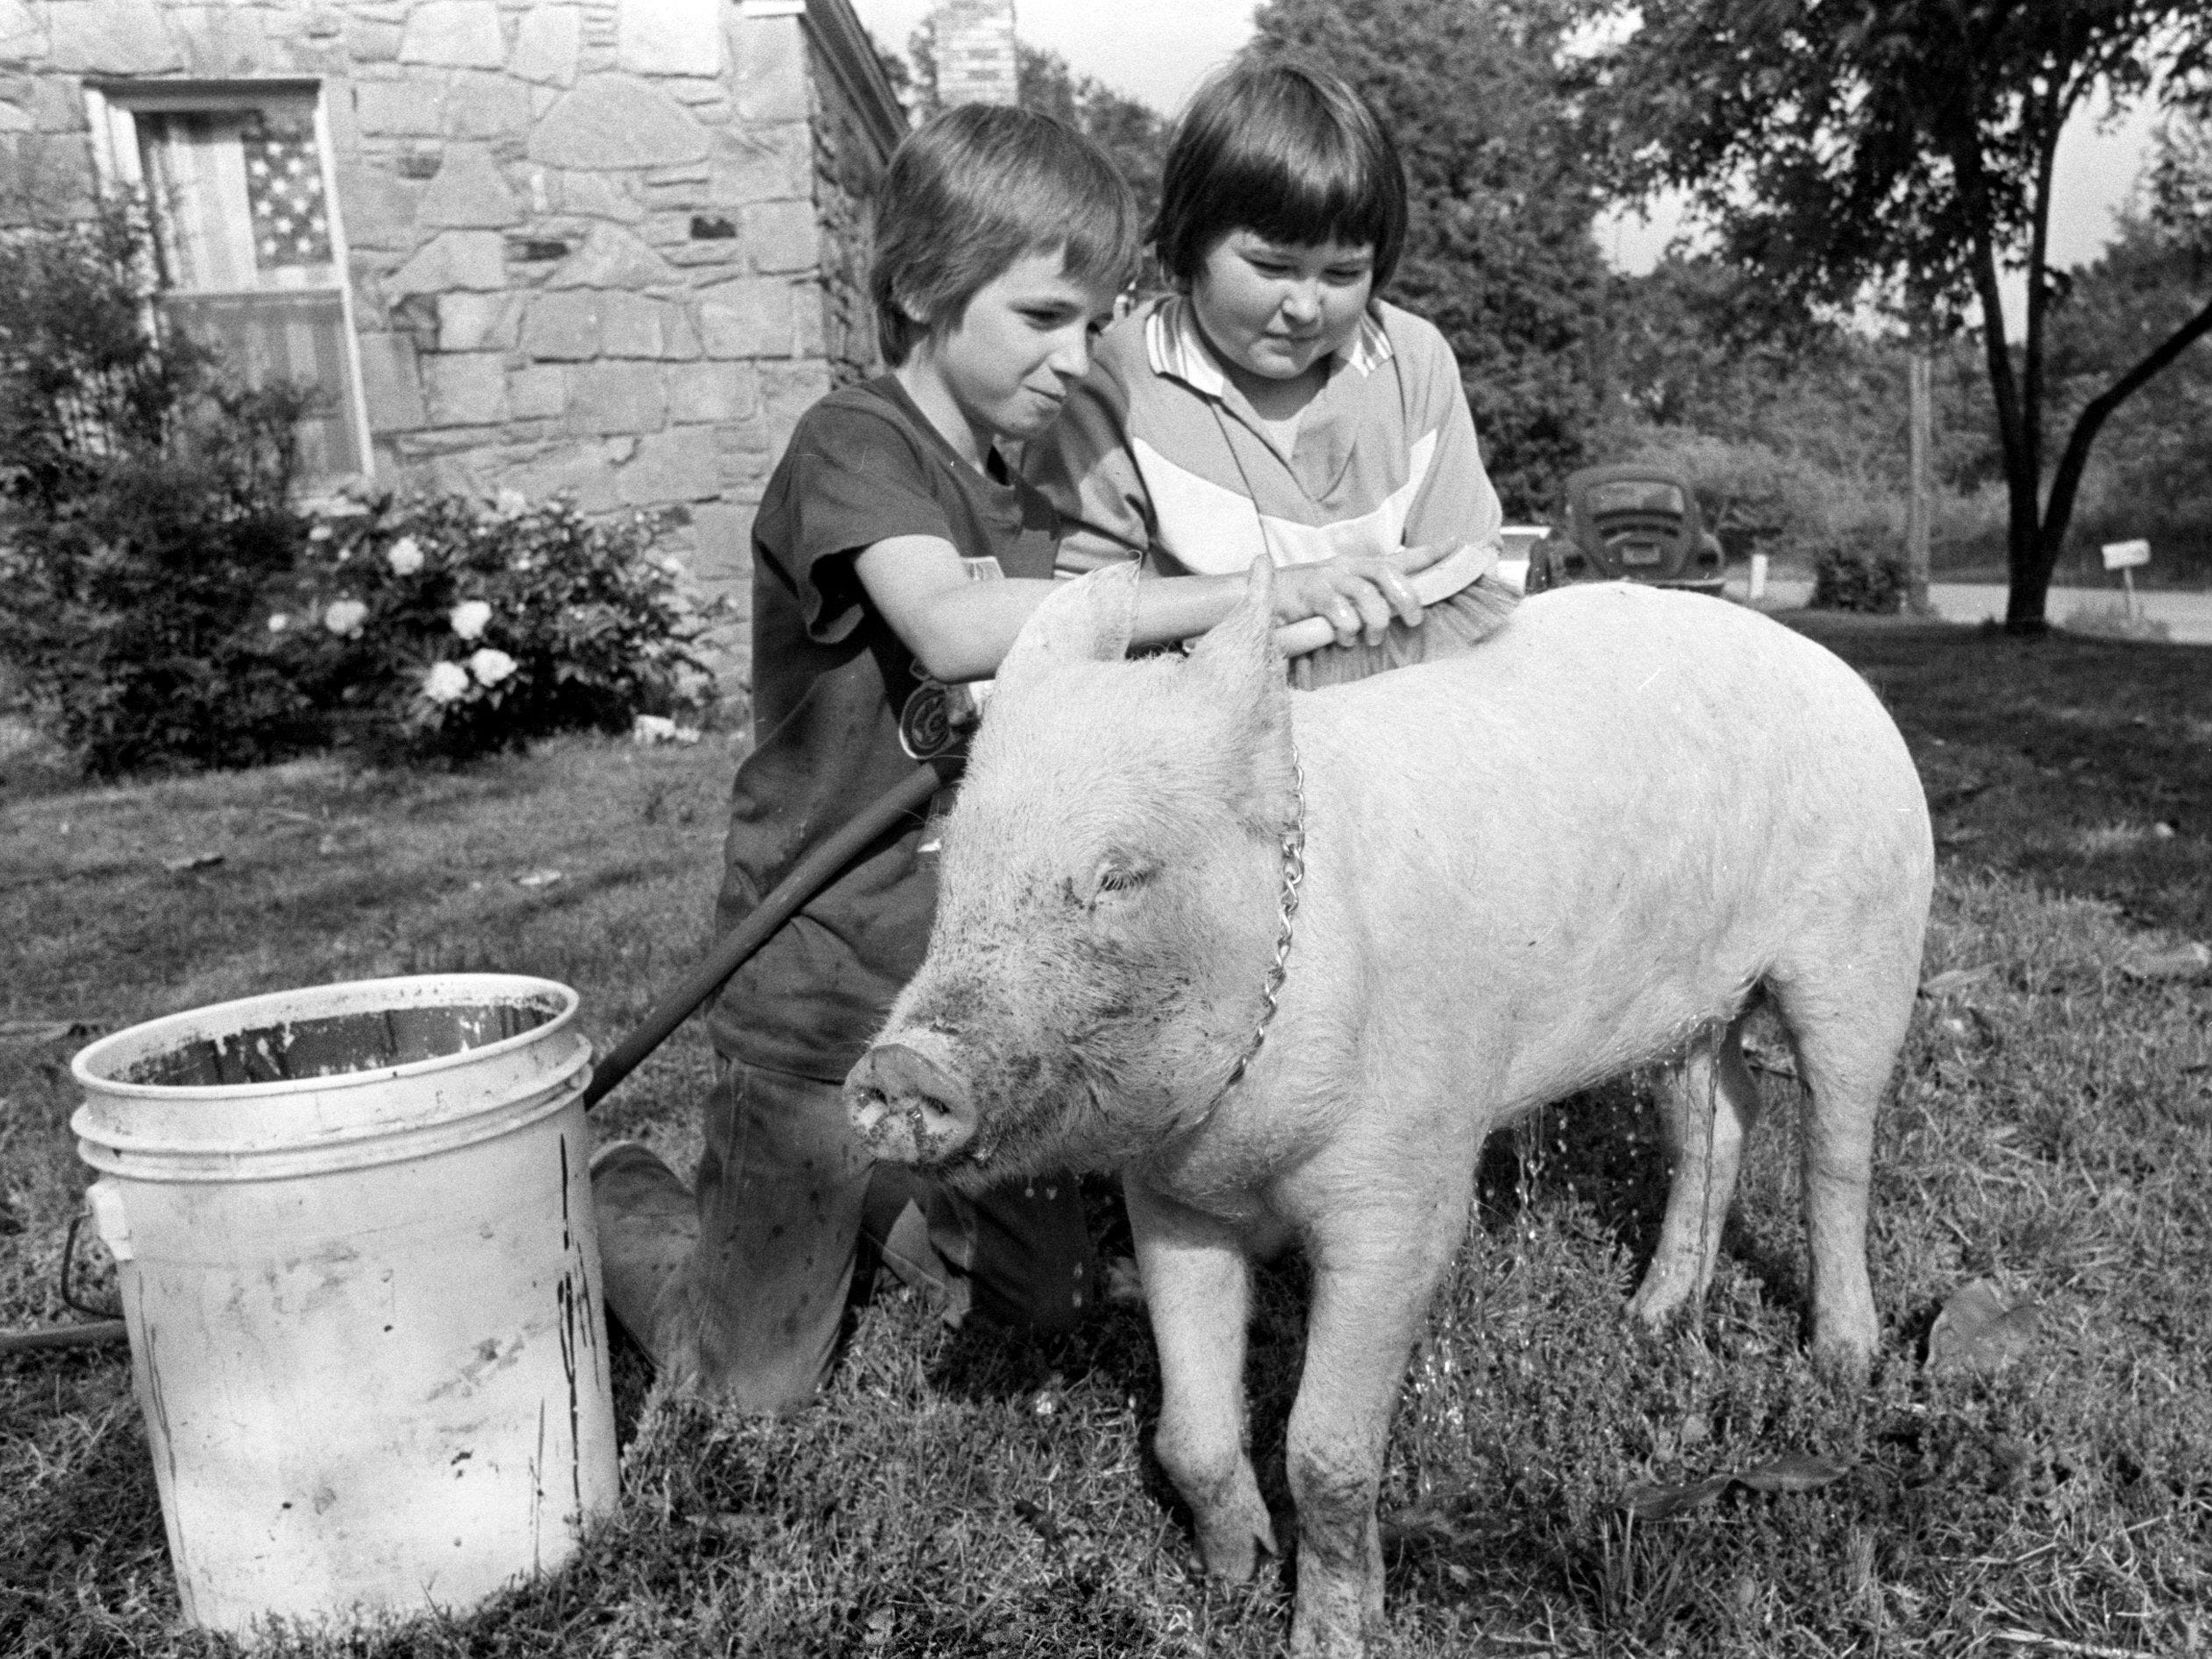 Kevin Kopp (Left) helps owner John Sanders bathe Susie on 5 May 1982 in preparation for the annual Children's Pet Parade. John, the 11-year-old son of Mr. and Mrs. M.R. Sanders of 282 South Circle Road, is spending the week getting Susie ready to put her best pigfoot forward in the Overton Park competition.